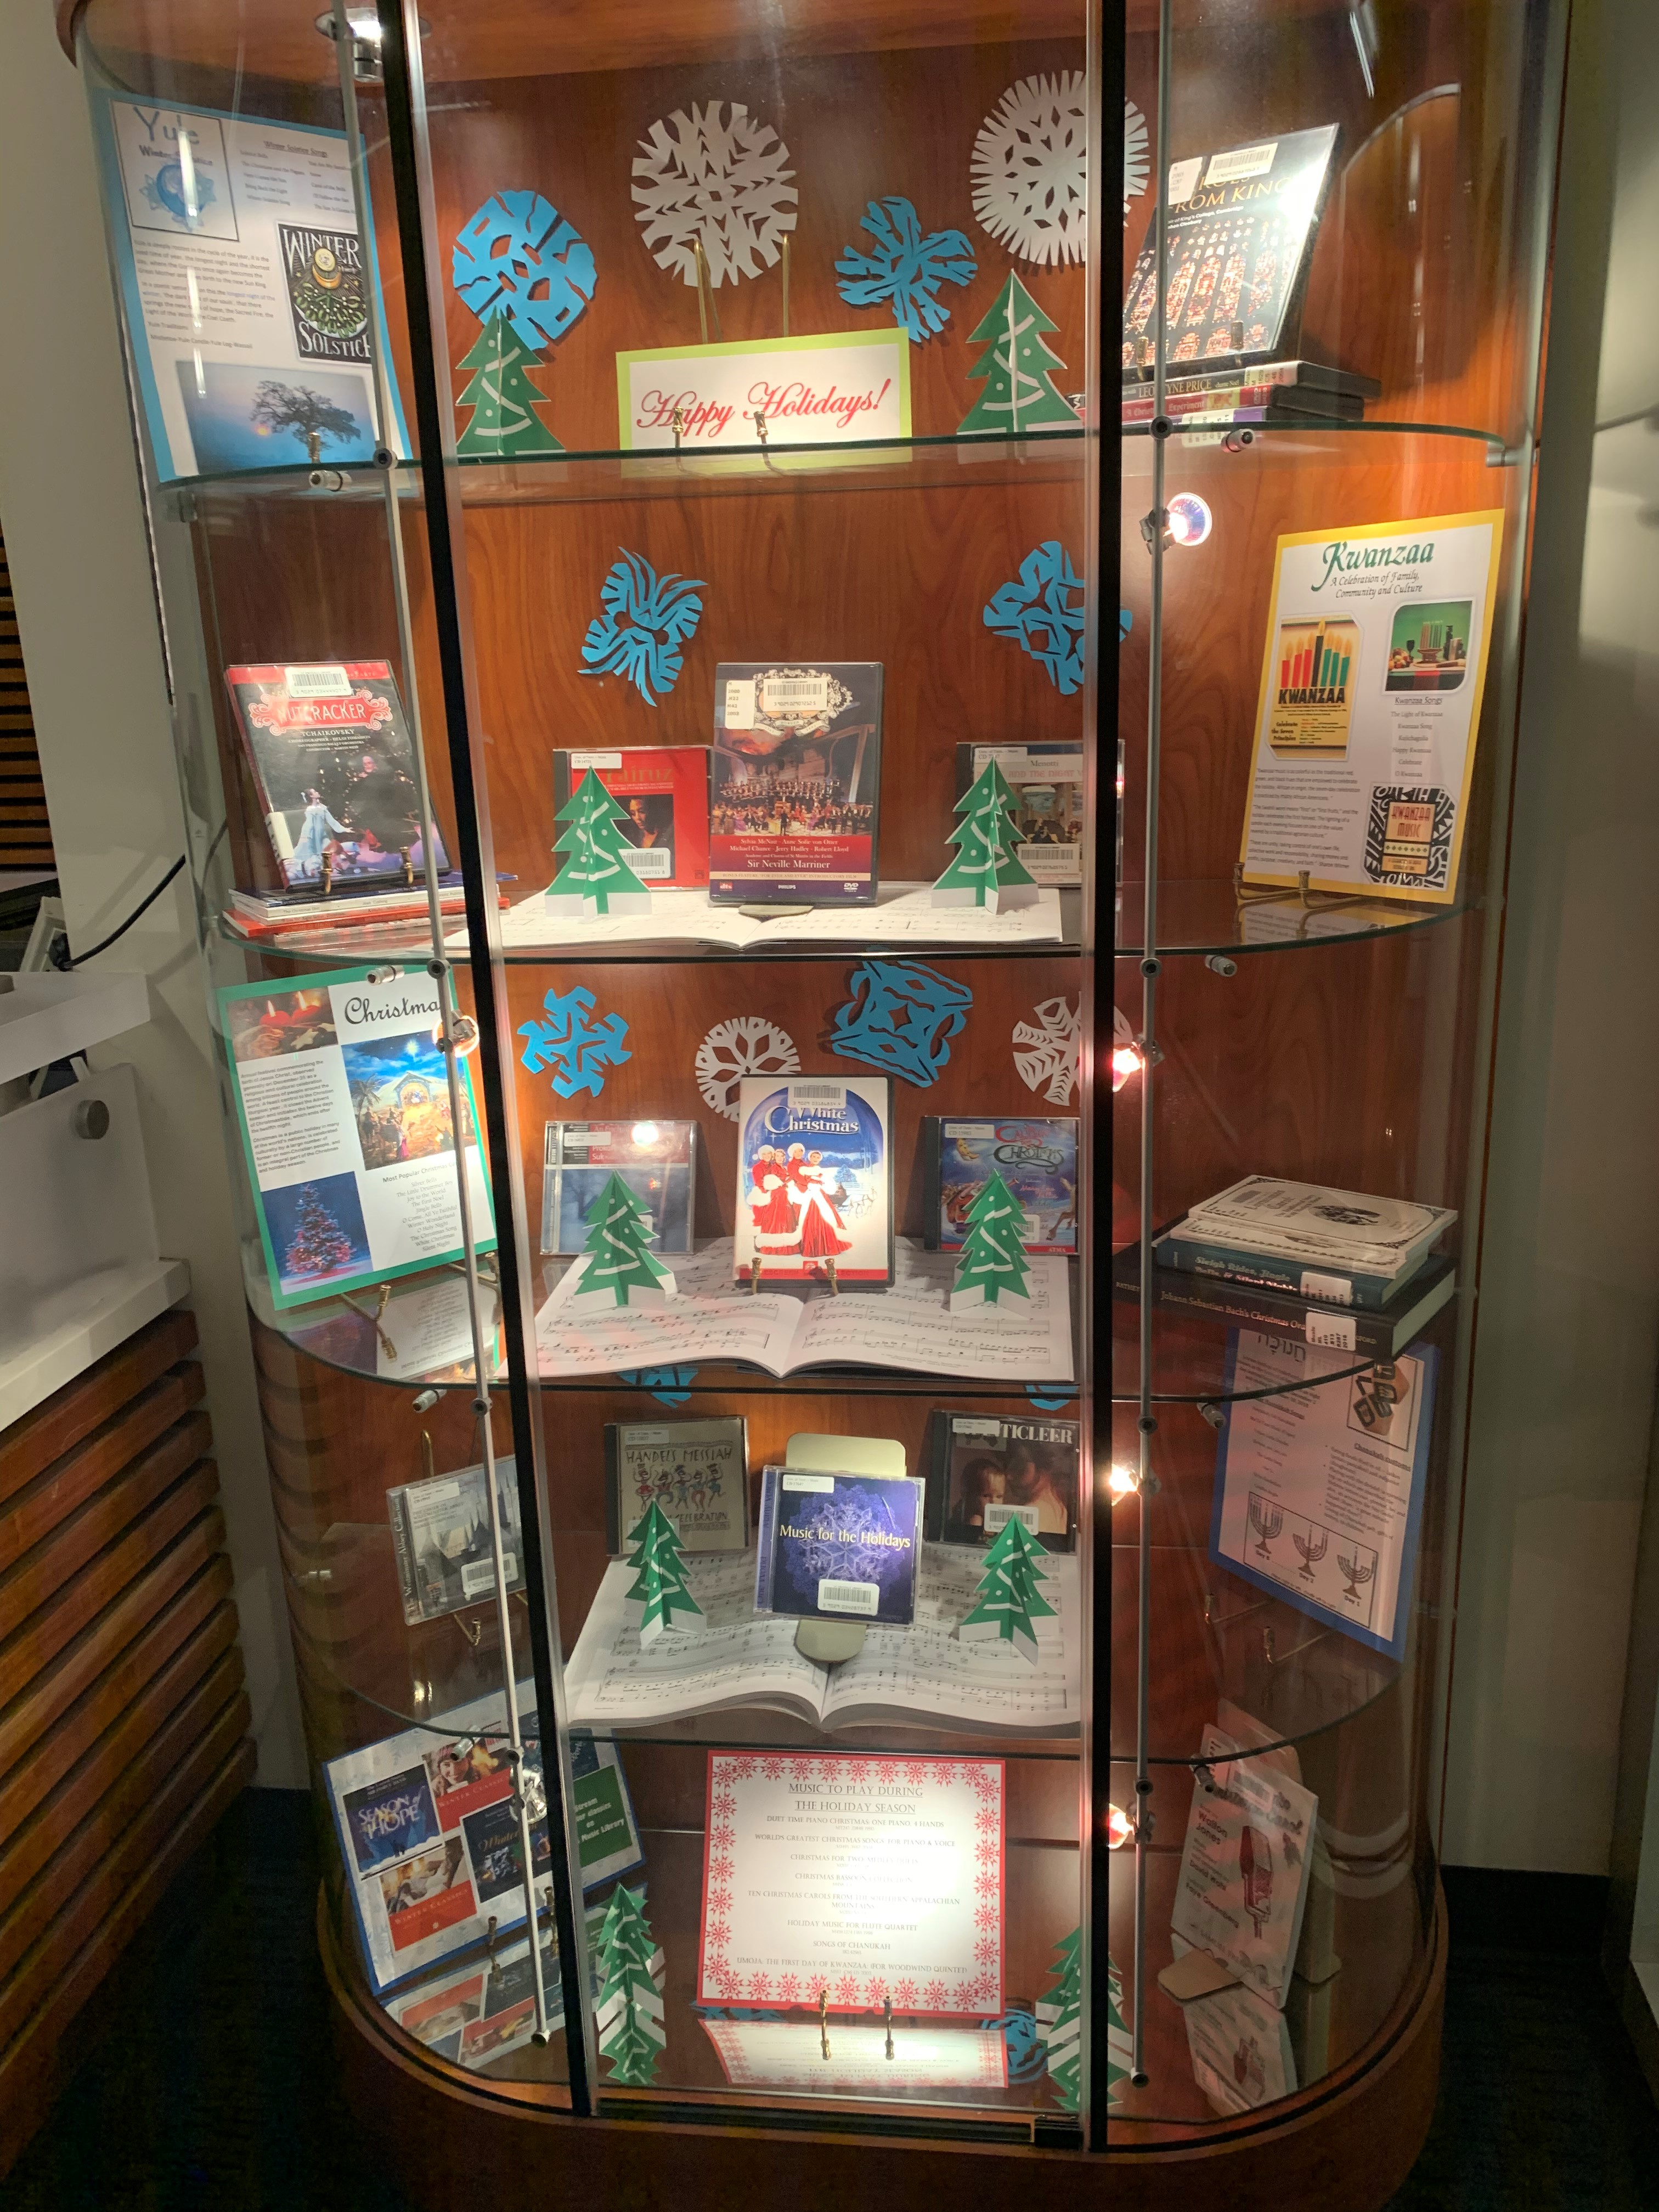 DeVine Display Case featuring holiday music material